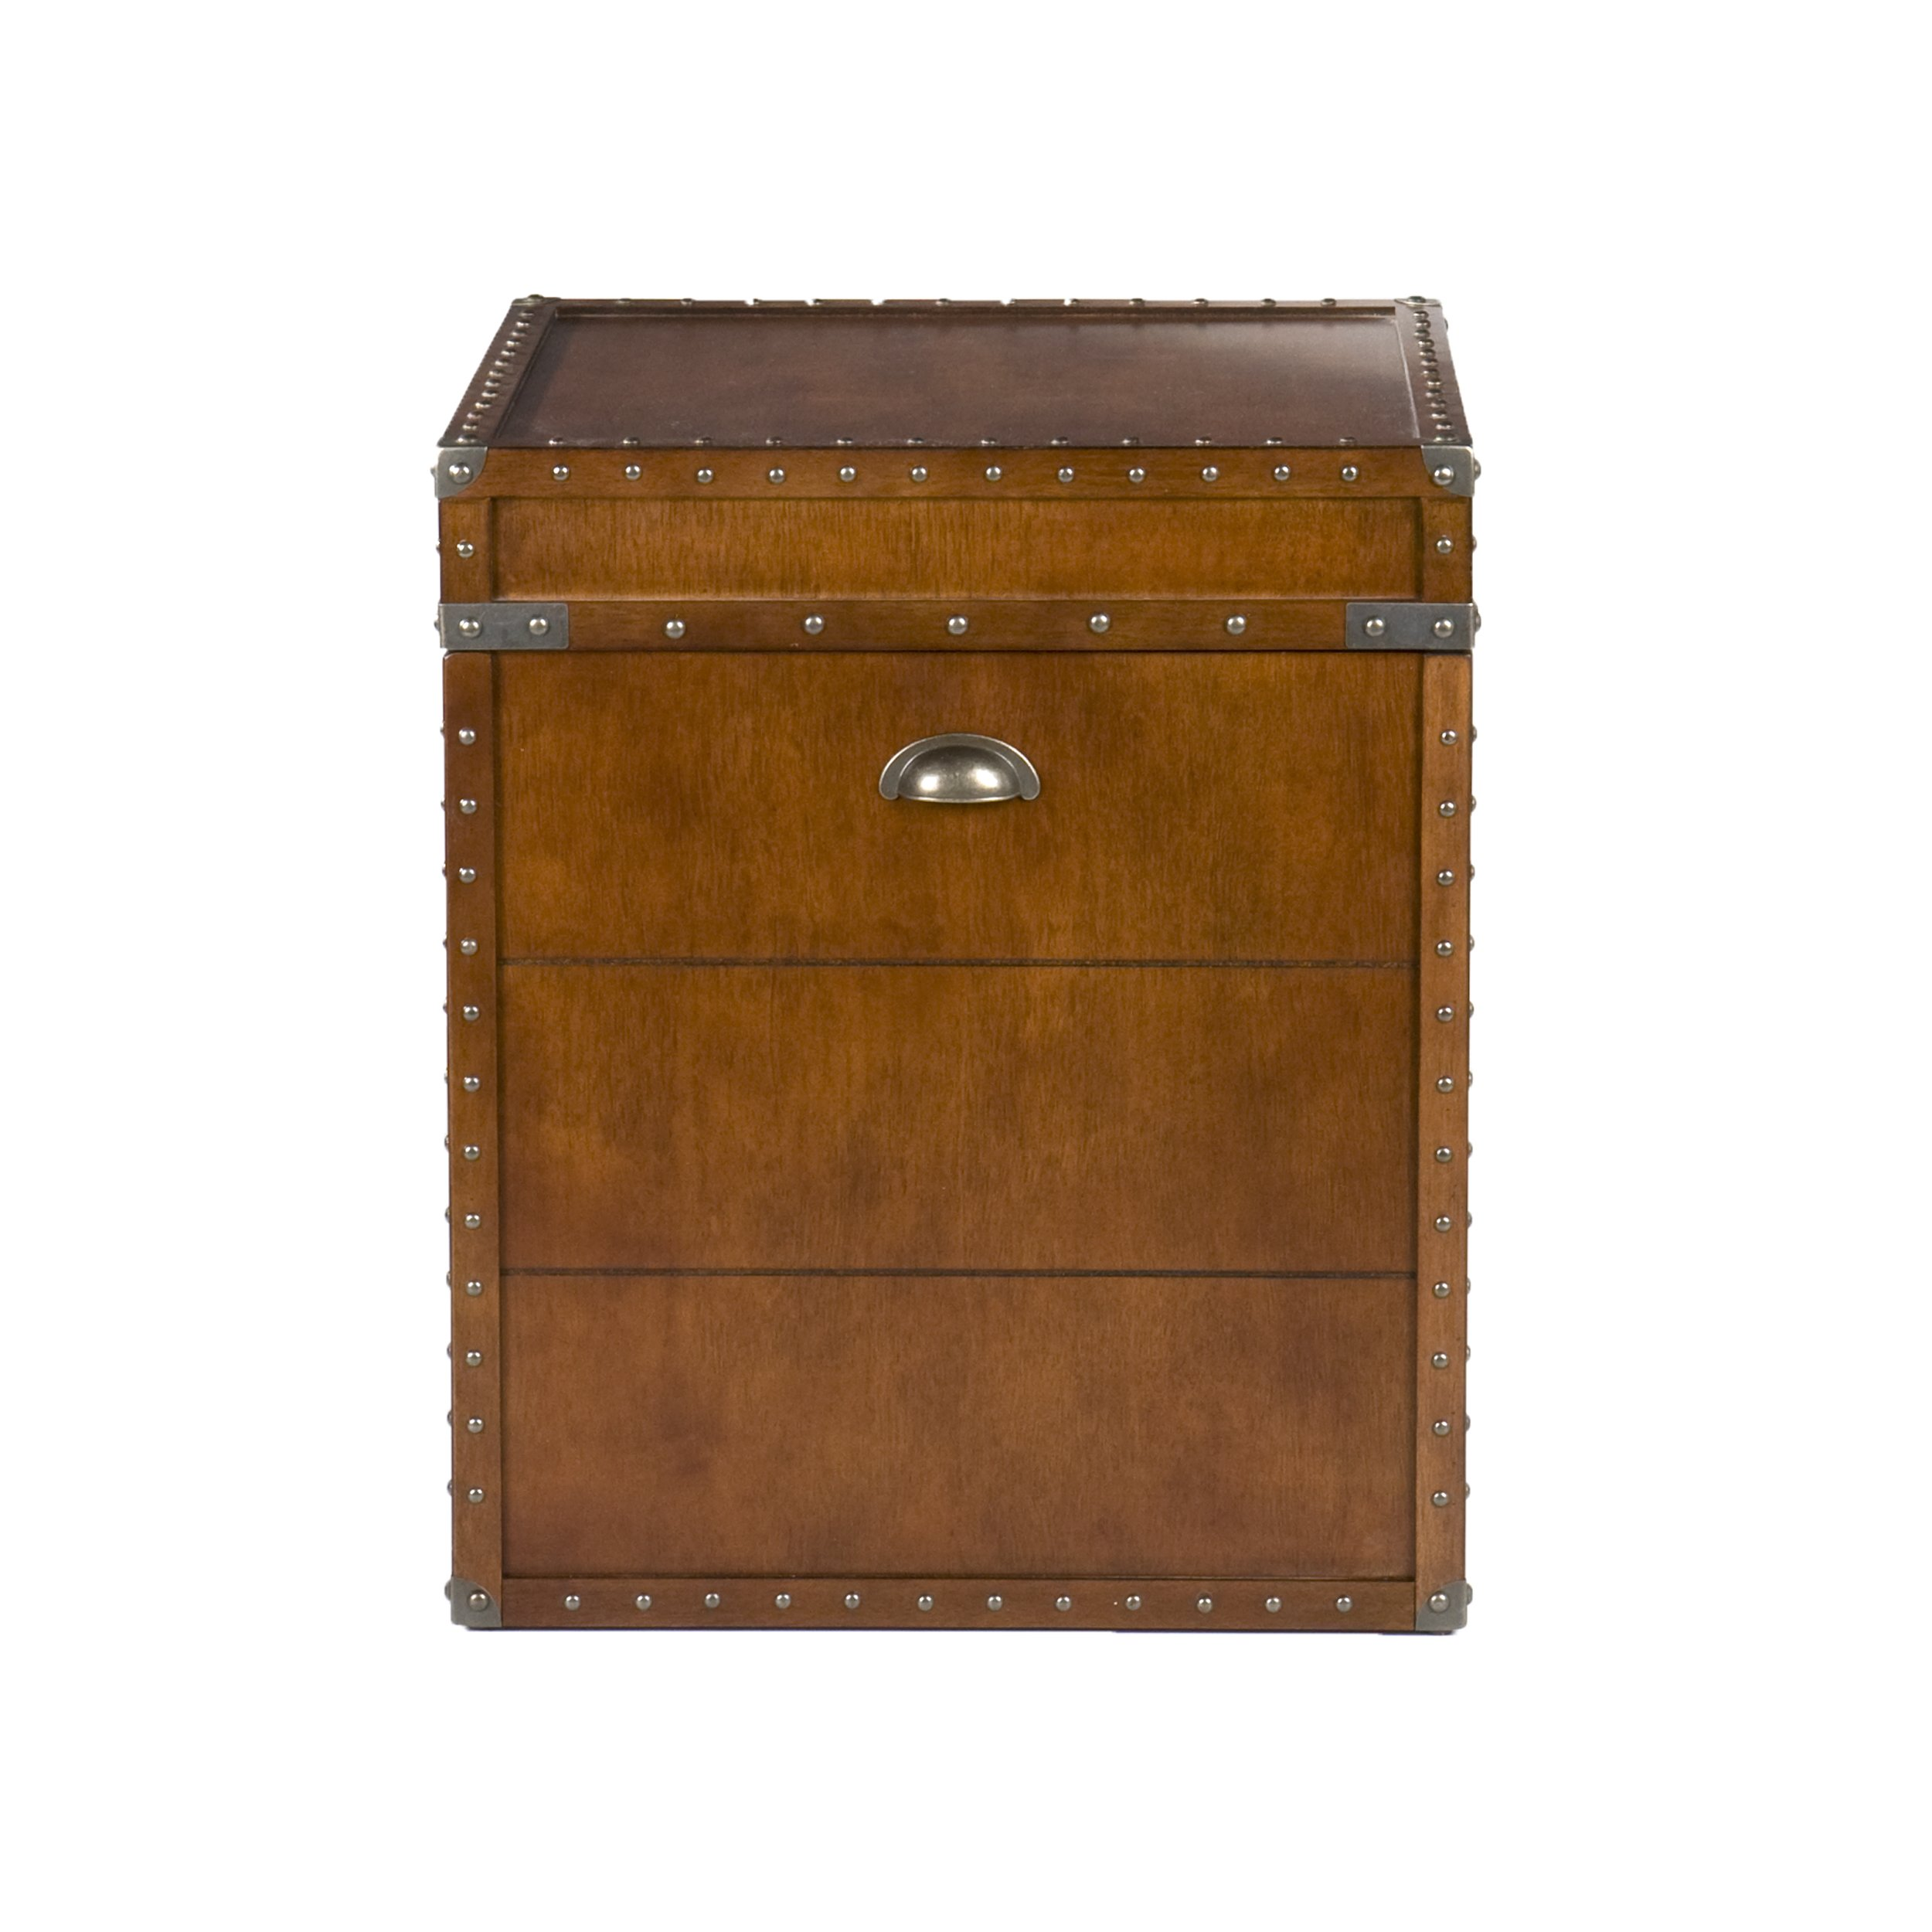 Southern Enterprises Steamer Trunk End Table - Rustic Nailhead Trim - Refinded Industrial Style by Southern Enterprises (Image #5)